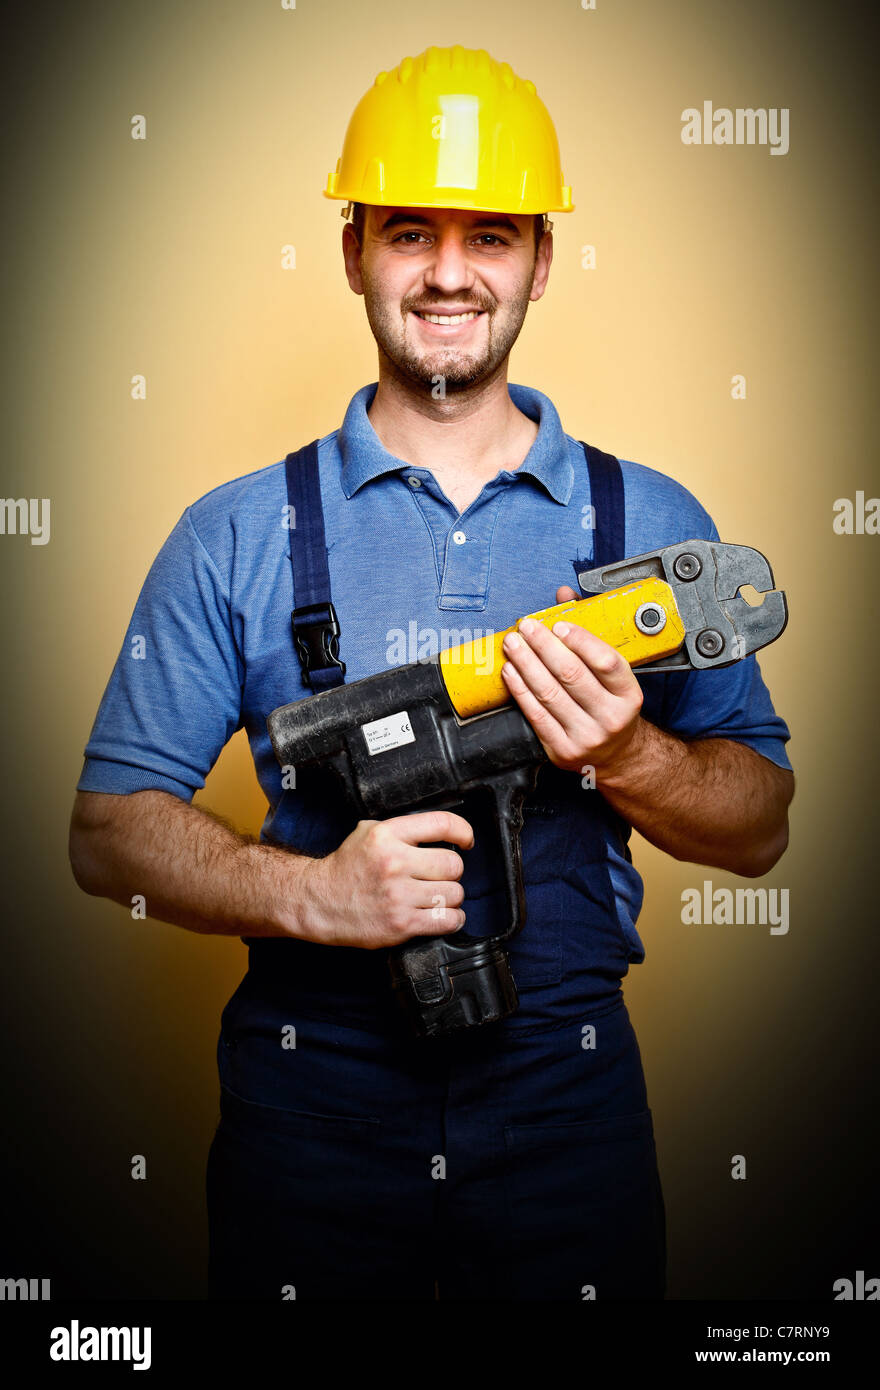 portrait of standing manual worker holding electric tool - Stock Image